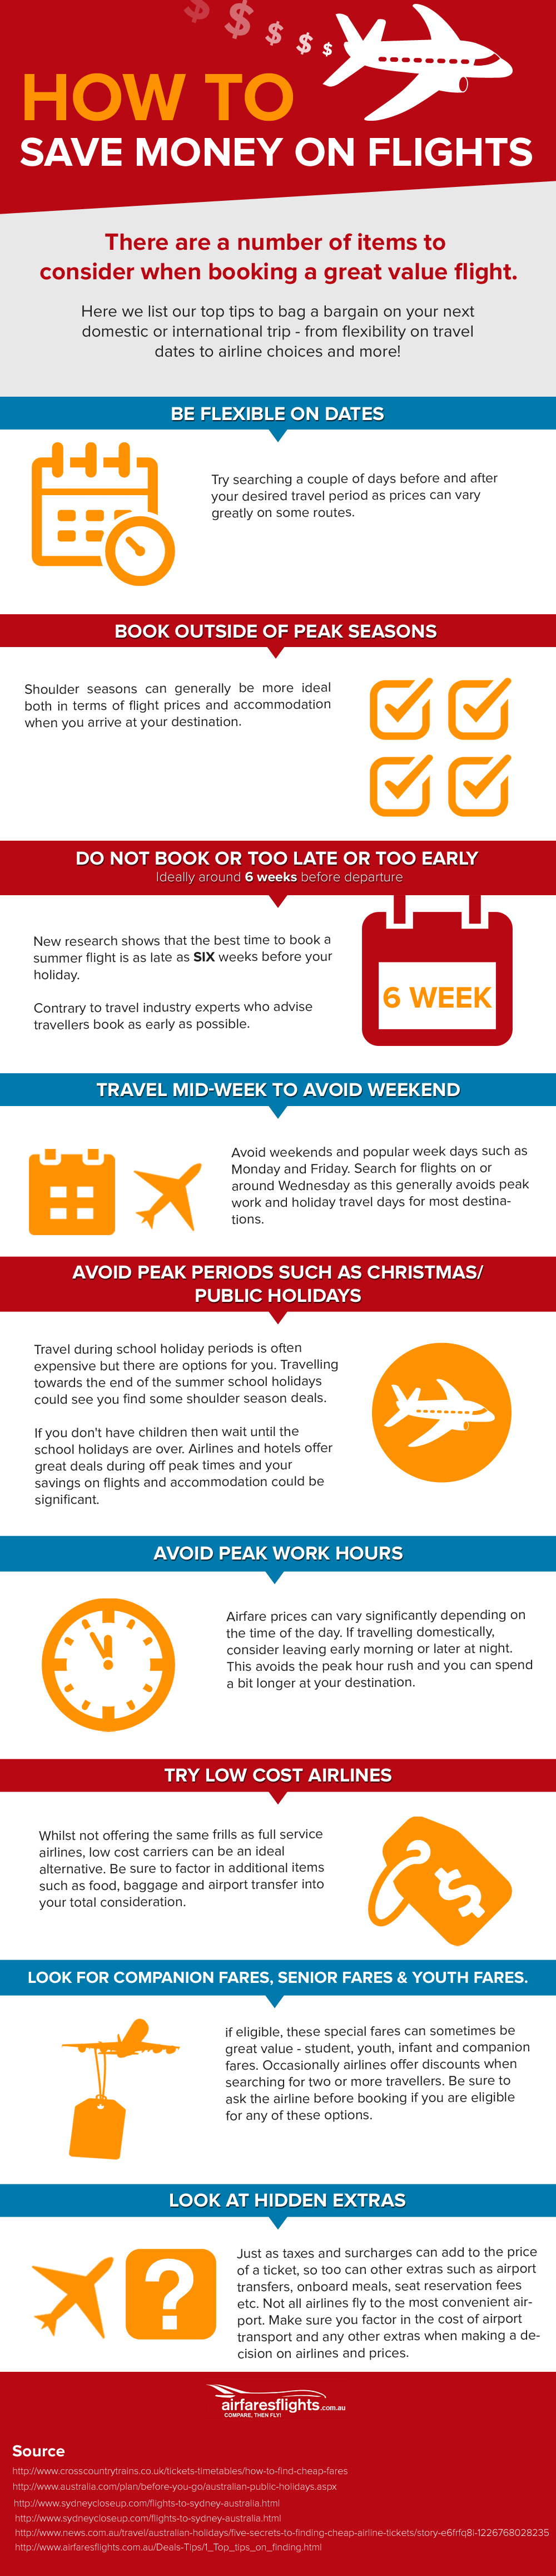 How to book cheap flights [infographic]